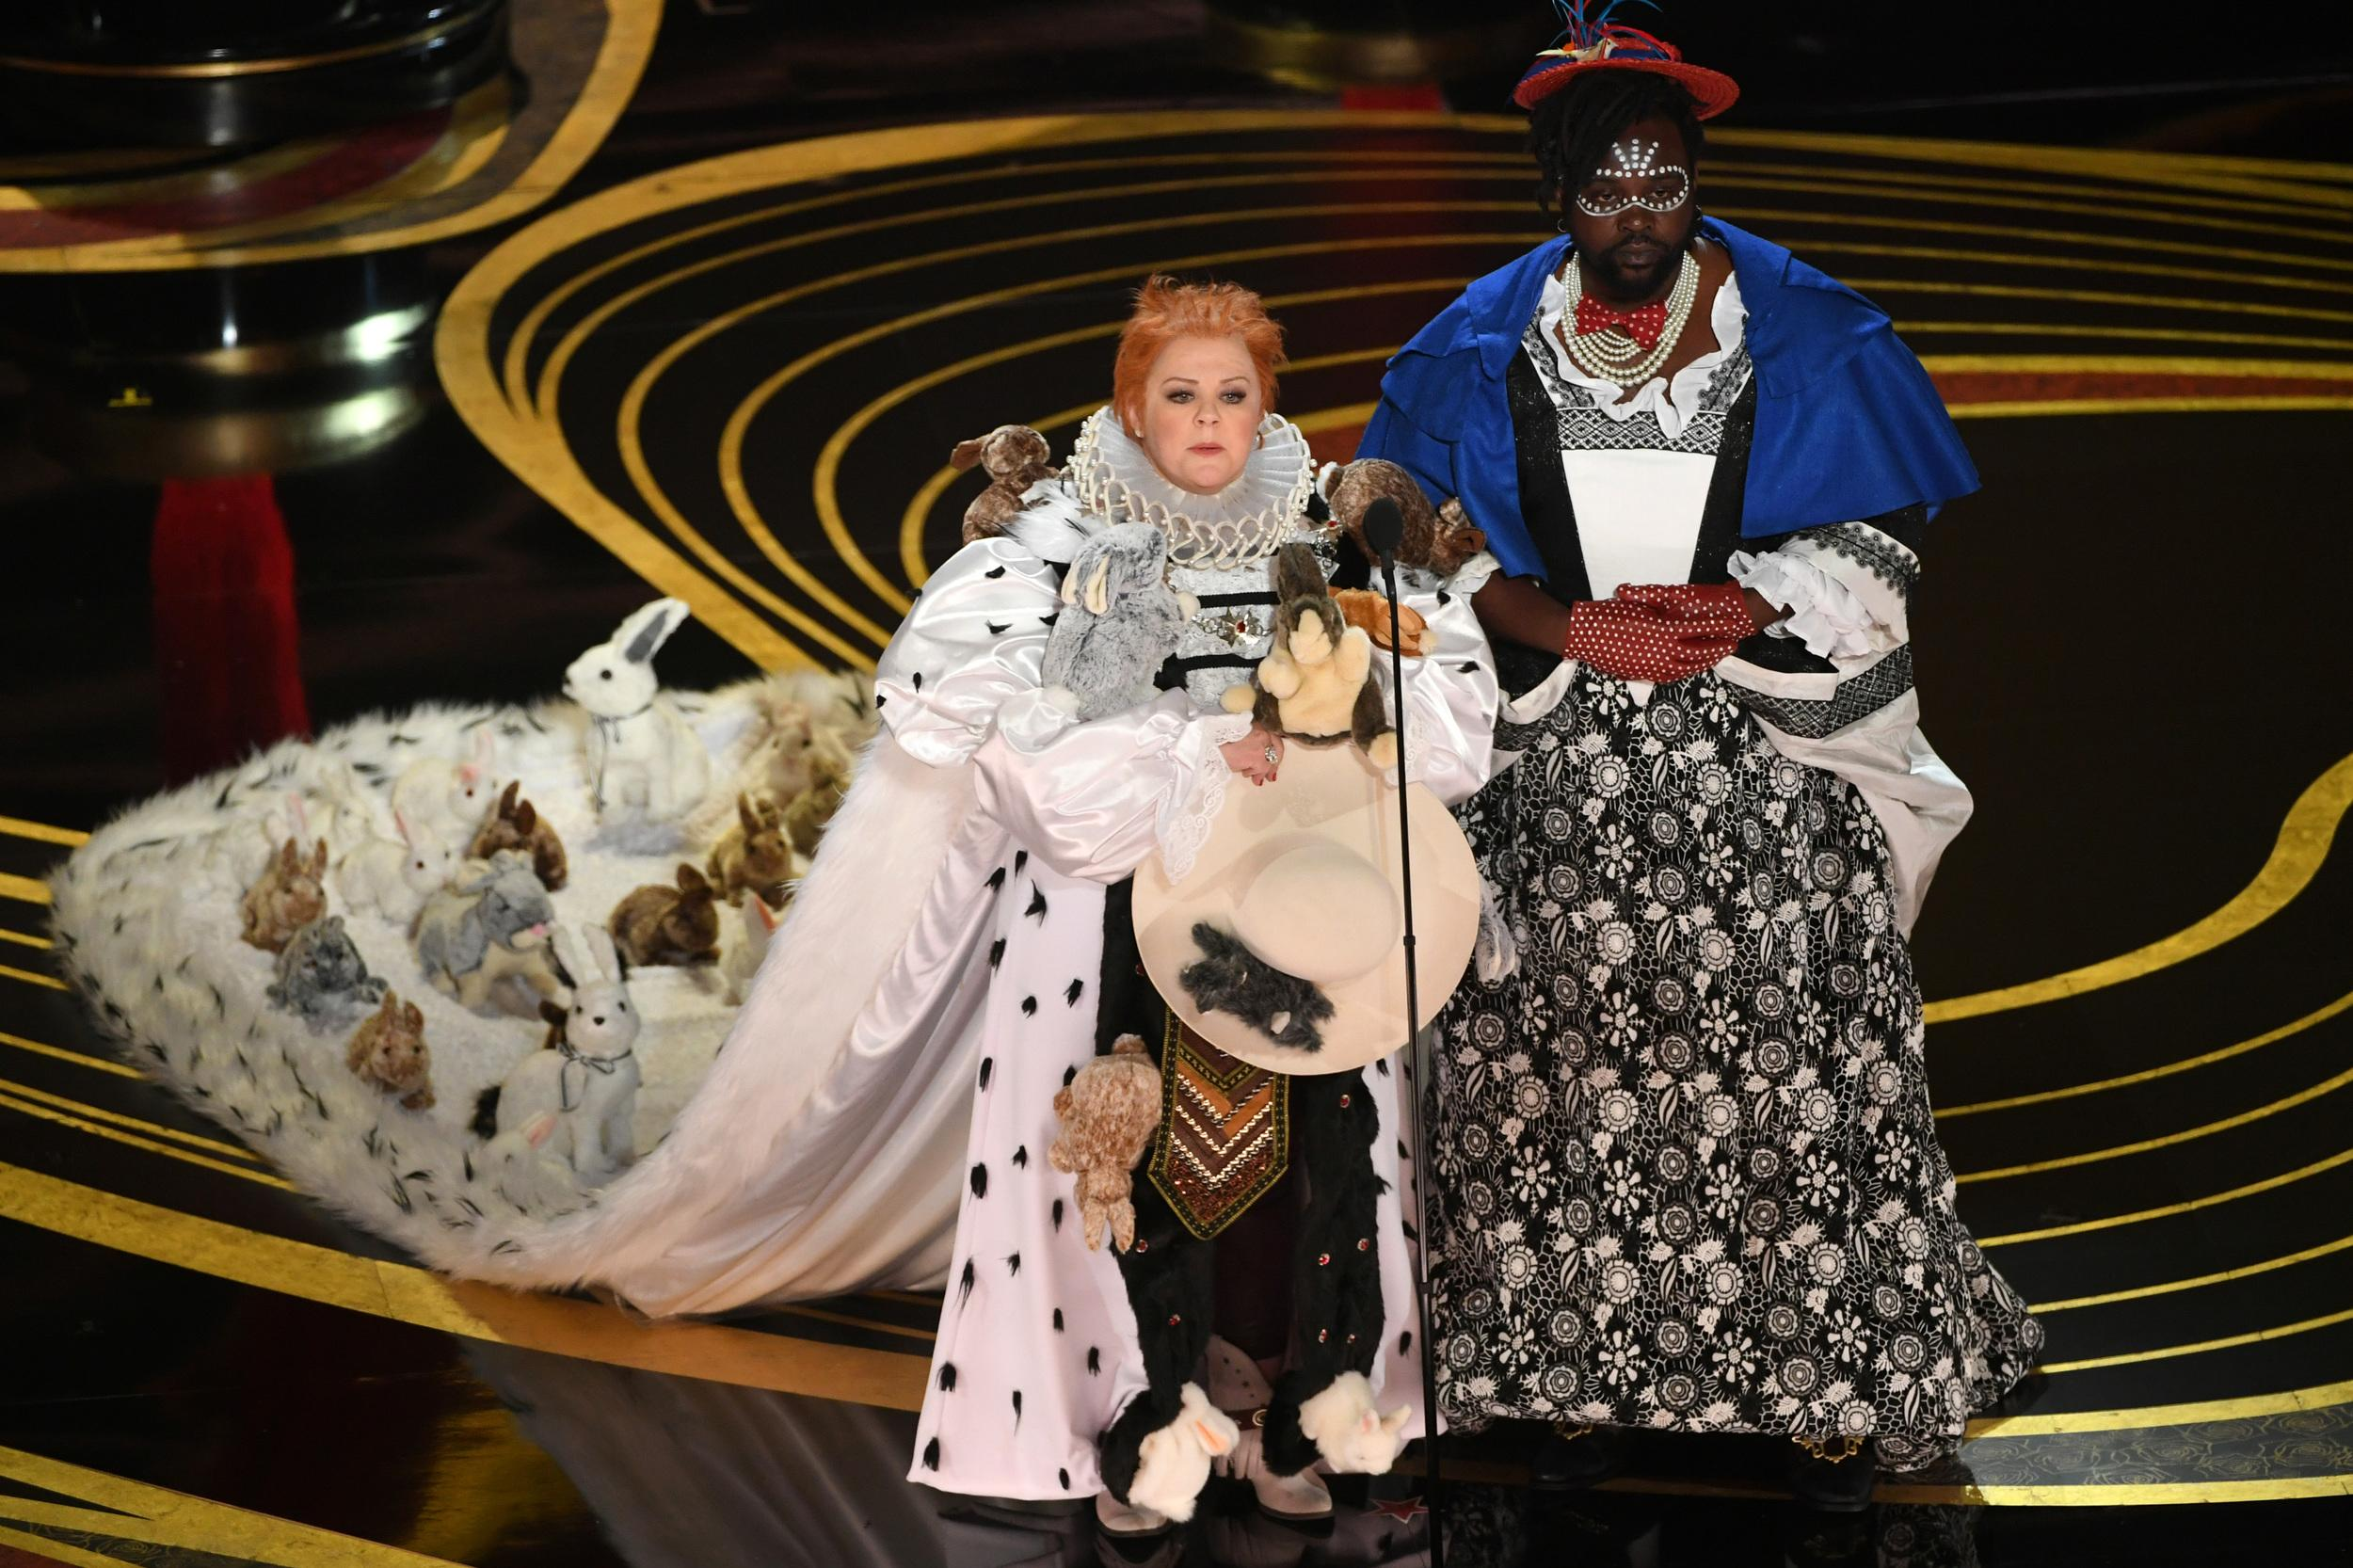 HOLLYWOOD, CALIFORNIA - FEBRUARY 24: (L-R) Melissa McCarthy and Brian Tyree Henry speak onstage during the 91st Annual Academy Awards at Dolby Theatre on February 24, 2019 in Hollywood, California. (Photo by Kevin Winter/Getty Images)